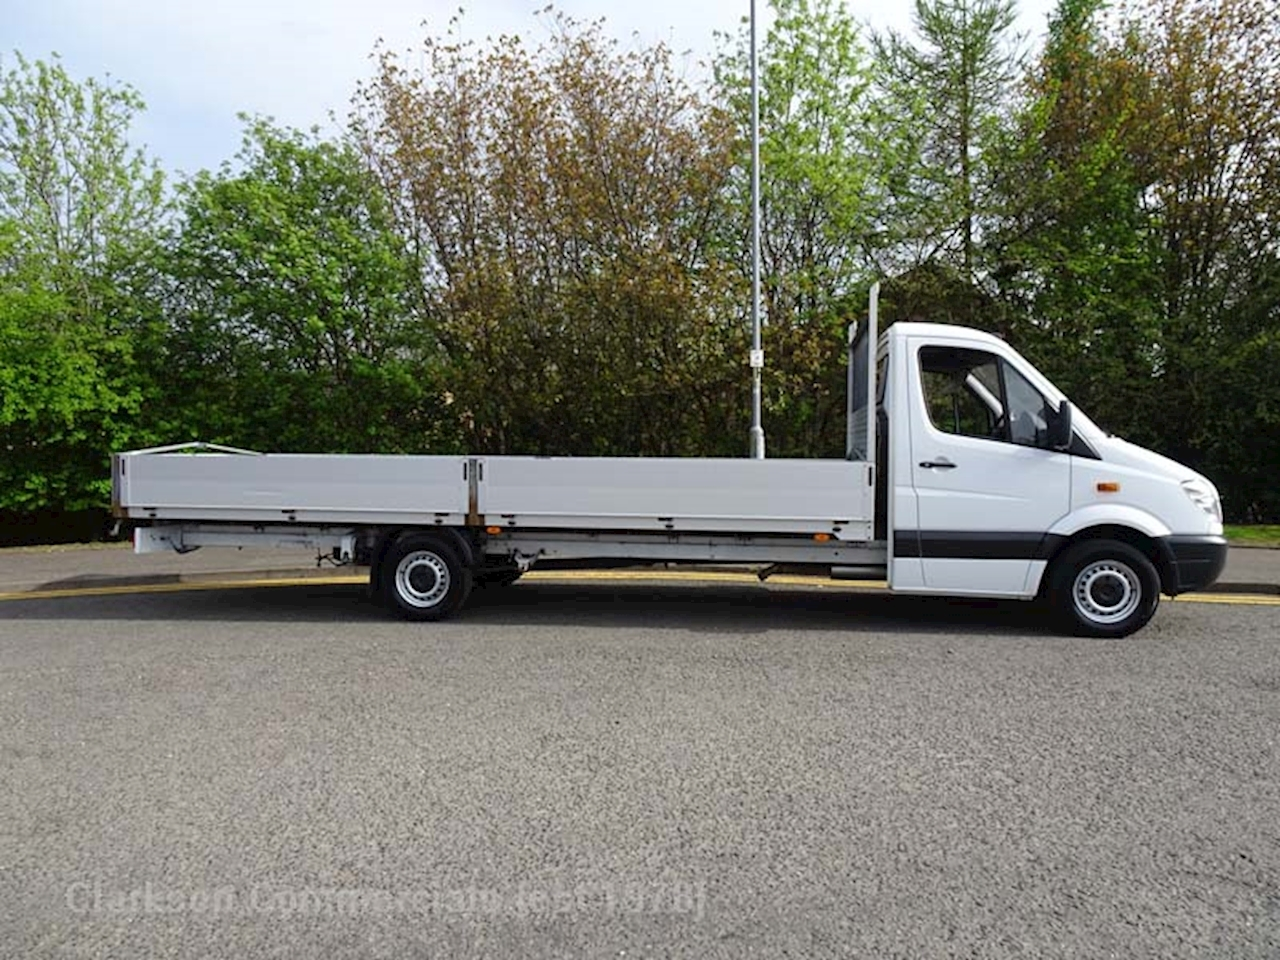 b3db3cd779 Mercedes-Benz Sprinter 313 Cdi extra long wheelbase 6m alloy dropsde. Low  cost UK delivery